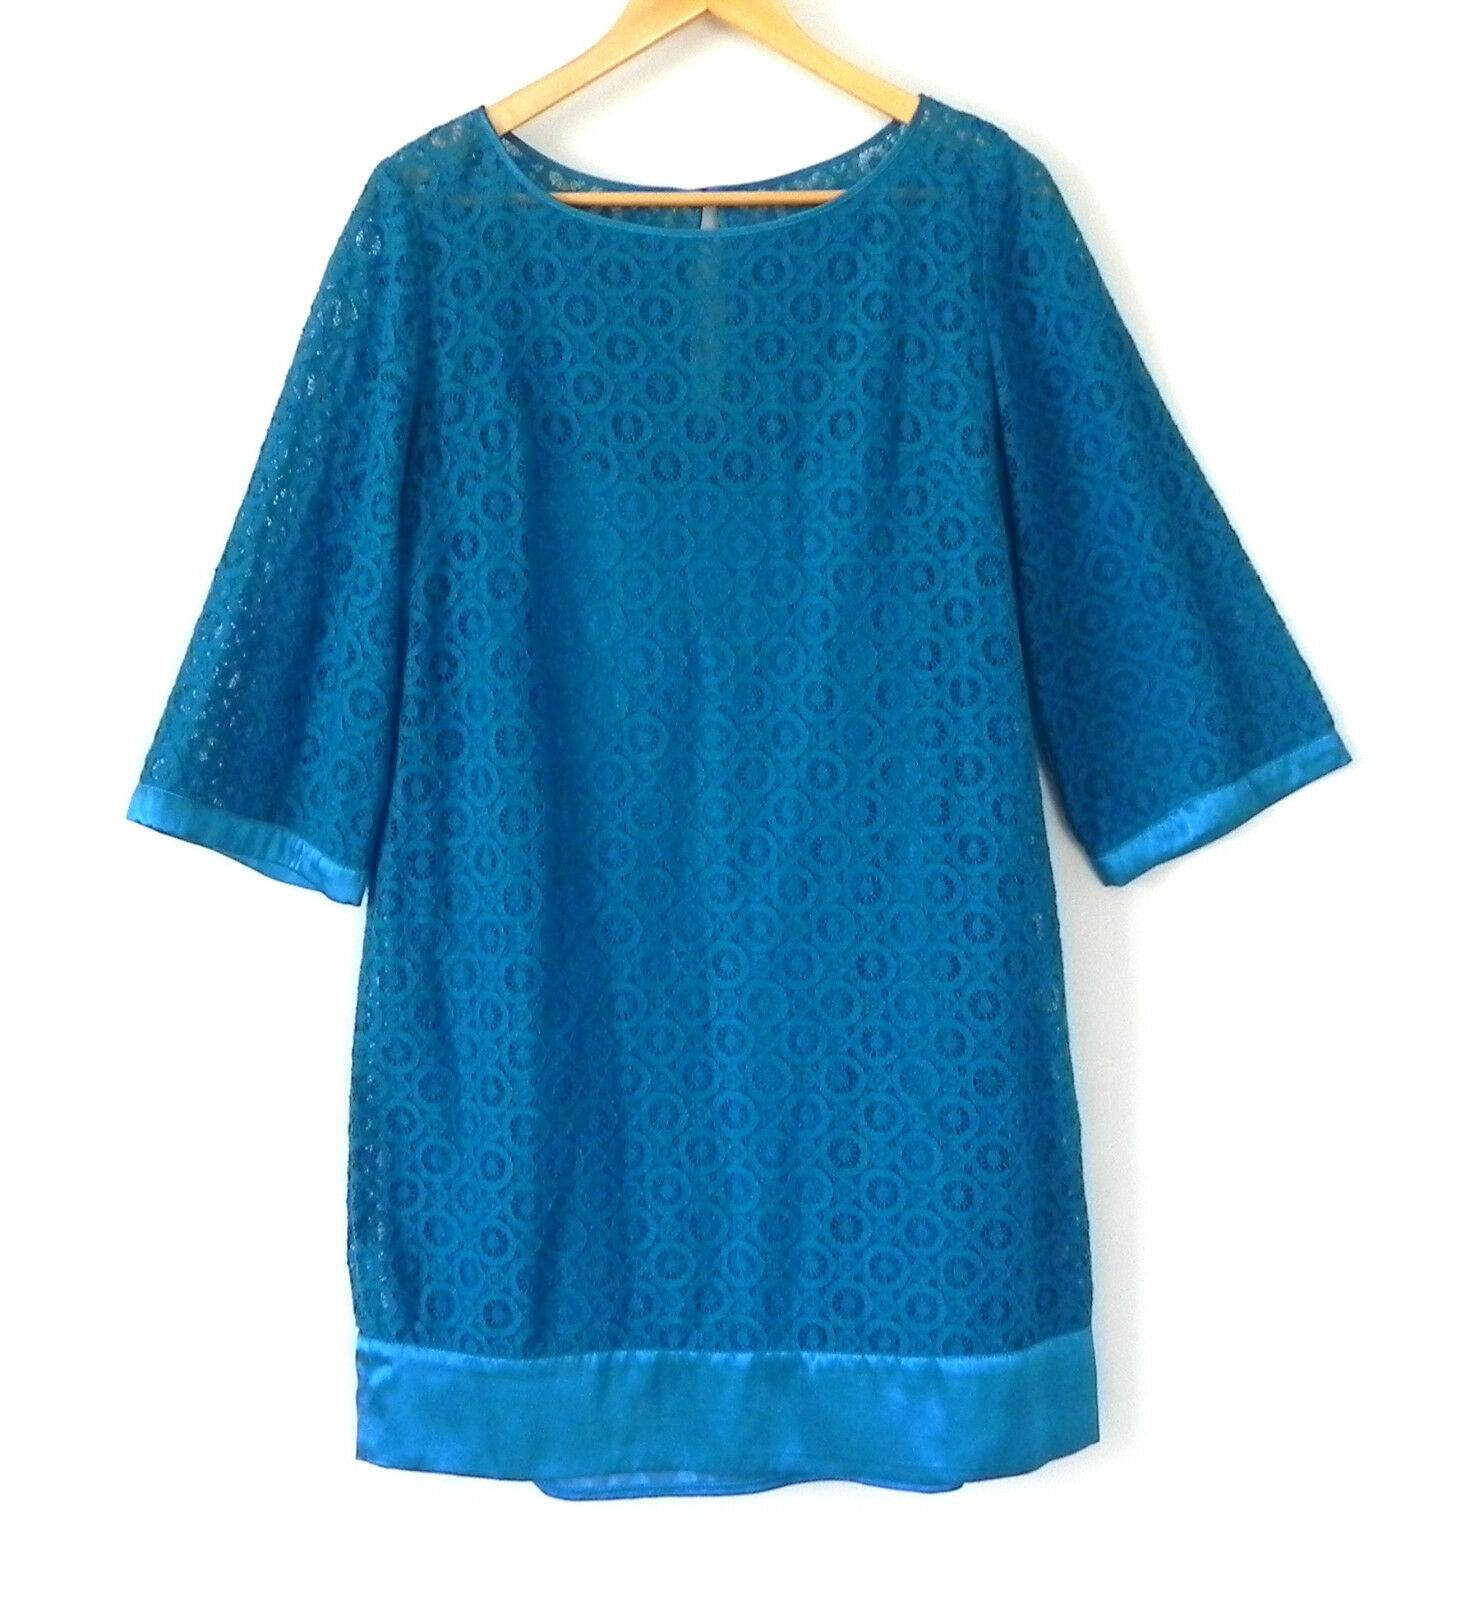 Laundry by Shelli Segal Dress Tunic Lace Turquoise 3 4 Sleeve Size 10